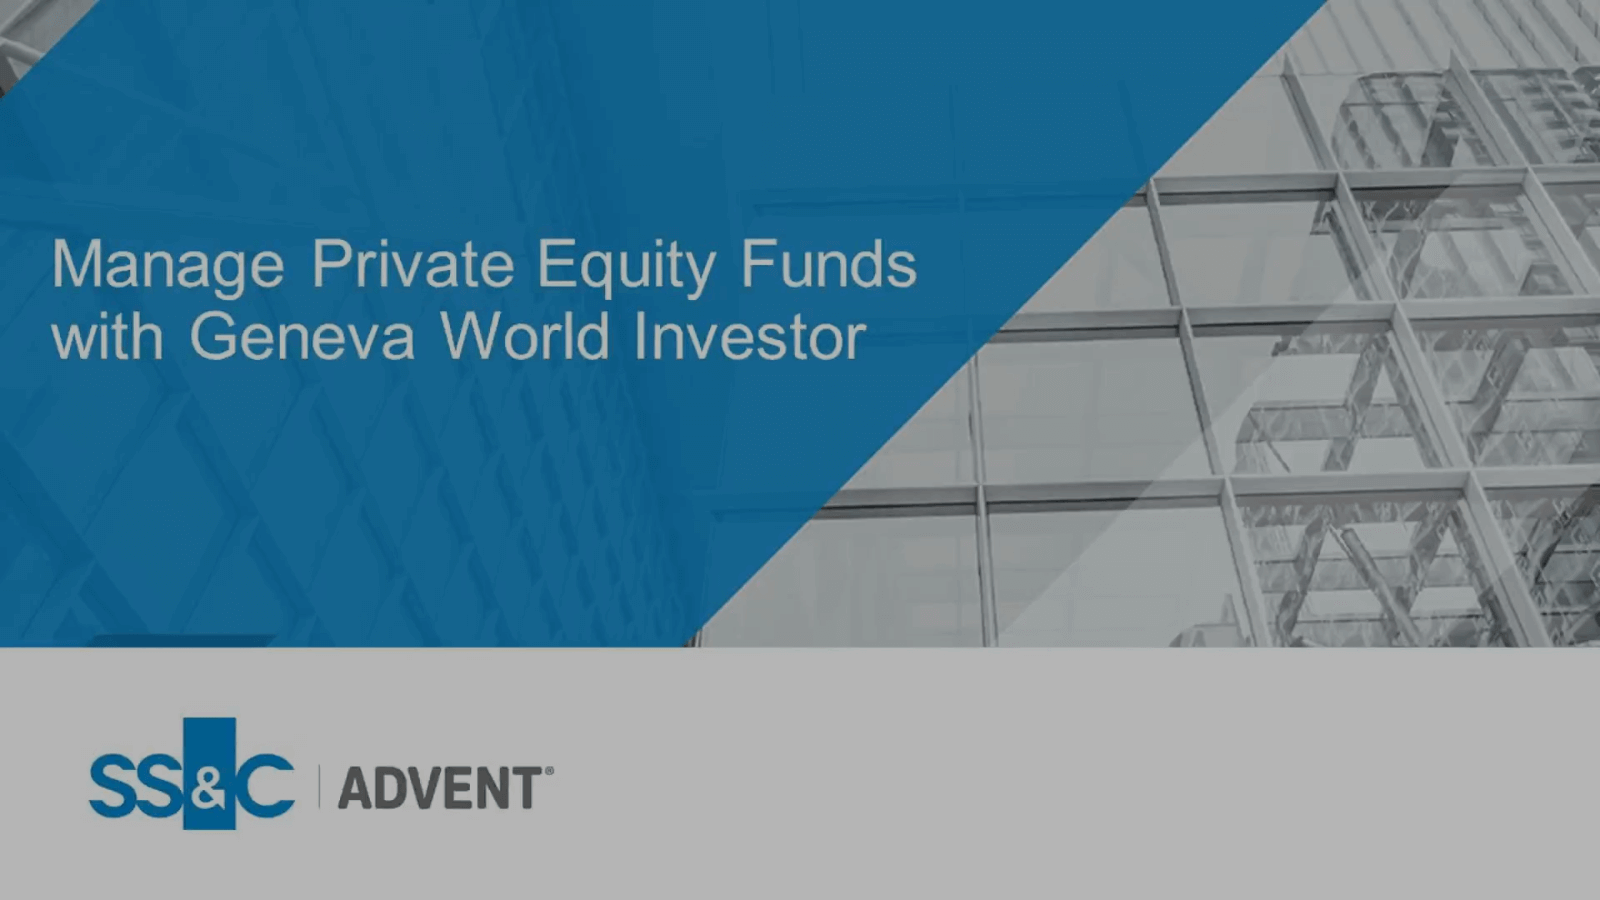 poster image for Managing Private Equity Funds with Geneva World Investor